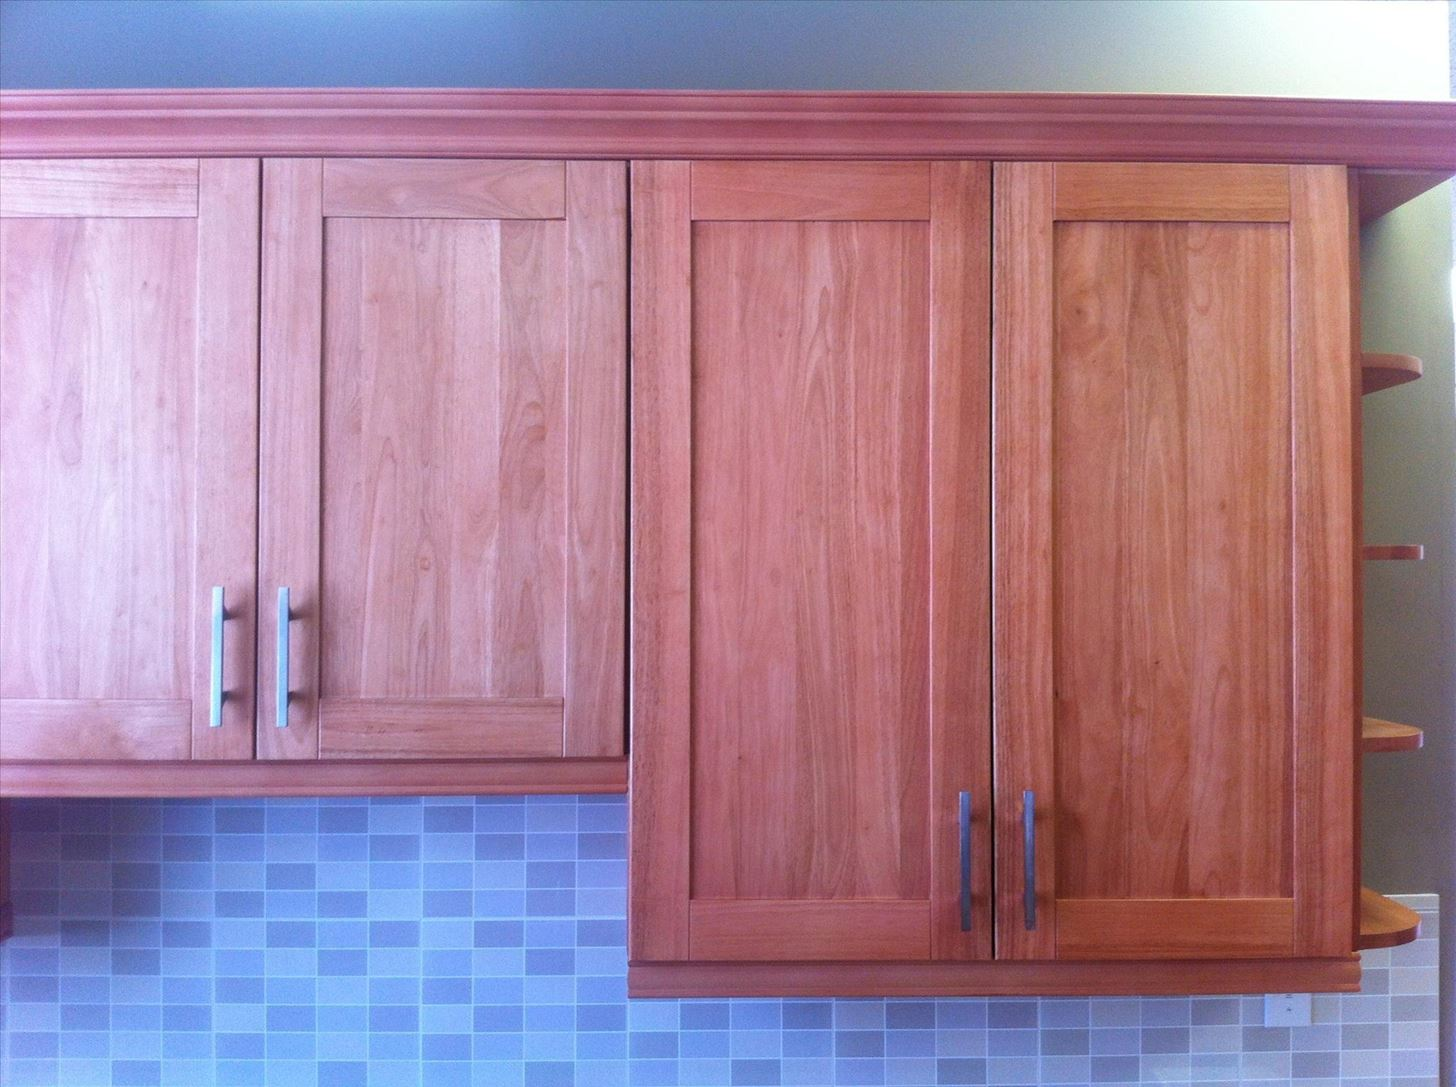 How To Adjust The Alignment Of Cabinet Doors Construction Repair